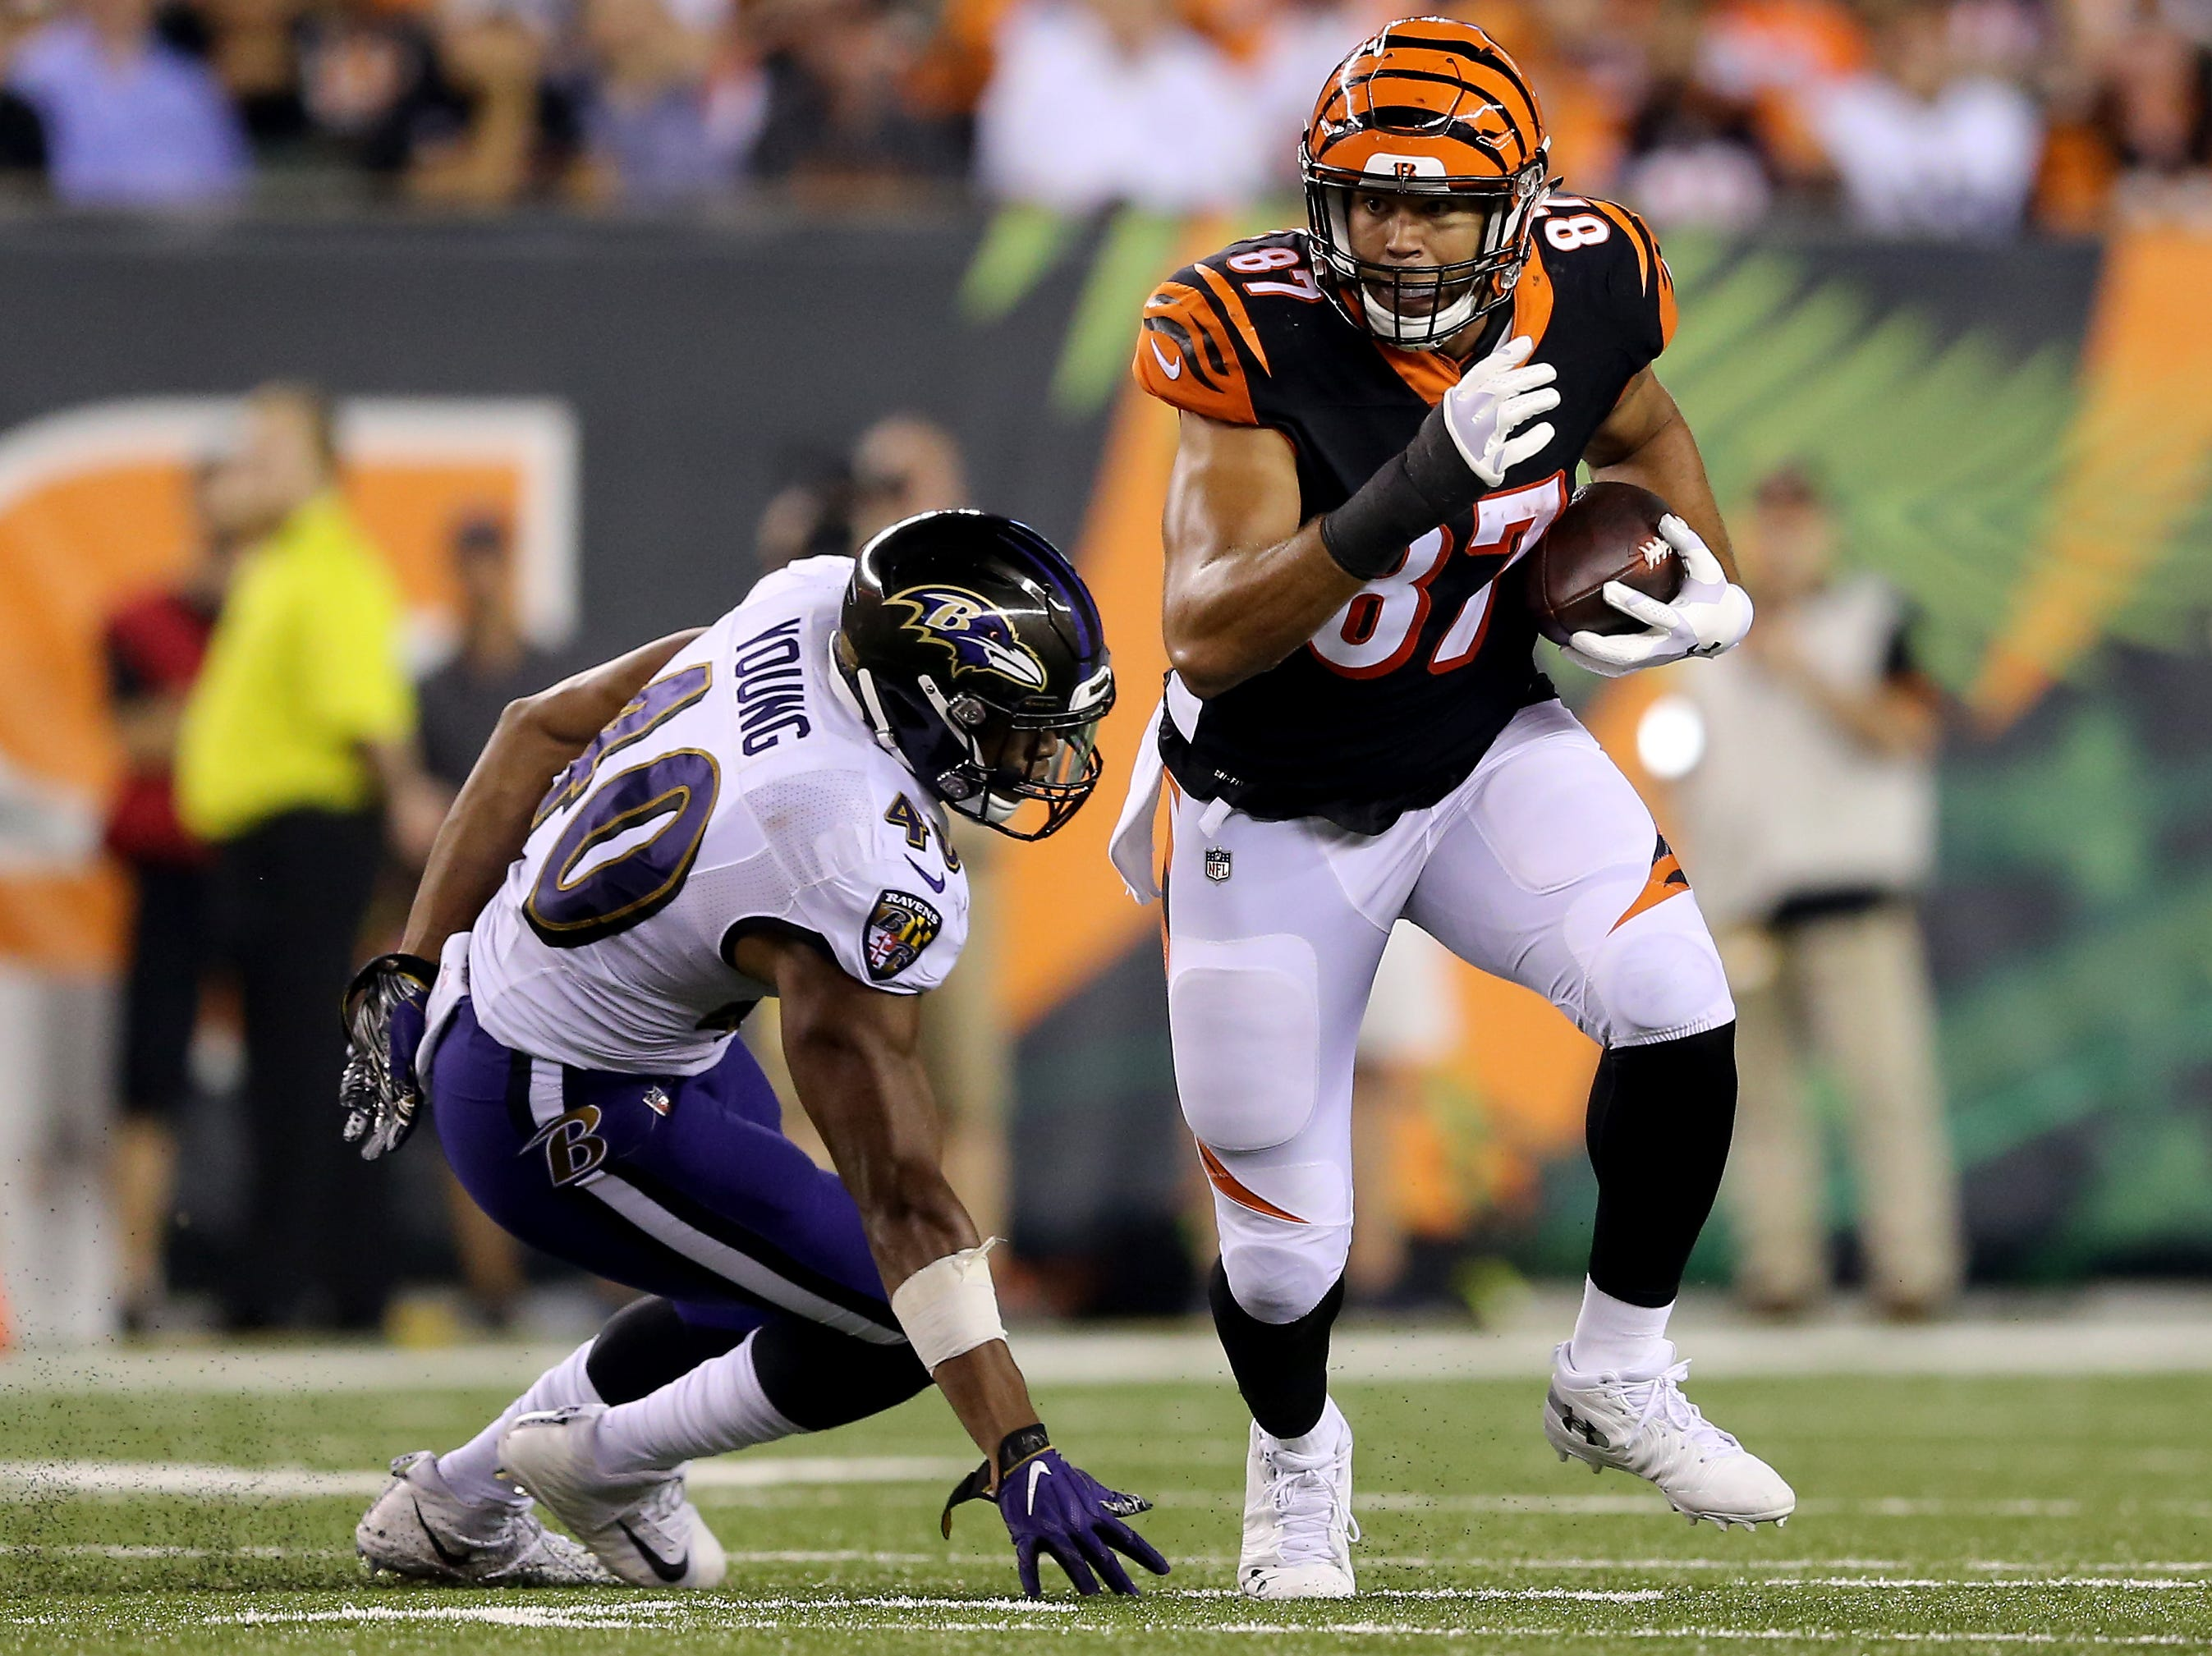 Cincinnati Bengals tight end C.J. Uzomah (87) turns downfield after making a catch in the fourth quarter during the Week 2 NFL football game between the Baltimore Ravens and the Cincinnati Bengals, Friday, Sept. 14, 2018, Paul Brown Stadium in Cincinnati. Cincinnati won 34-23.